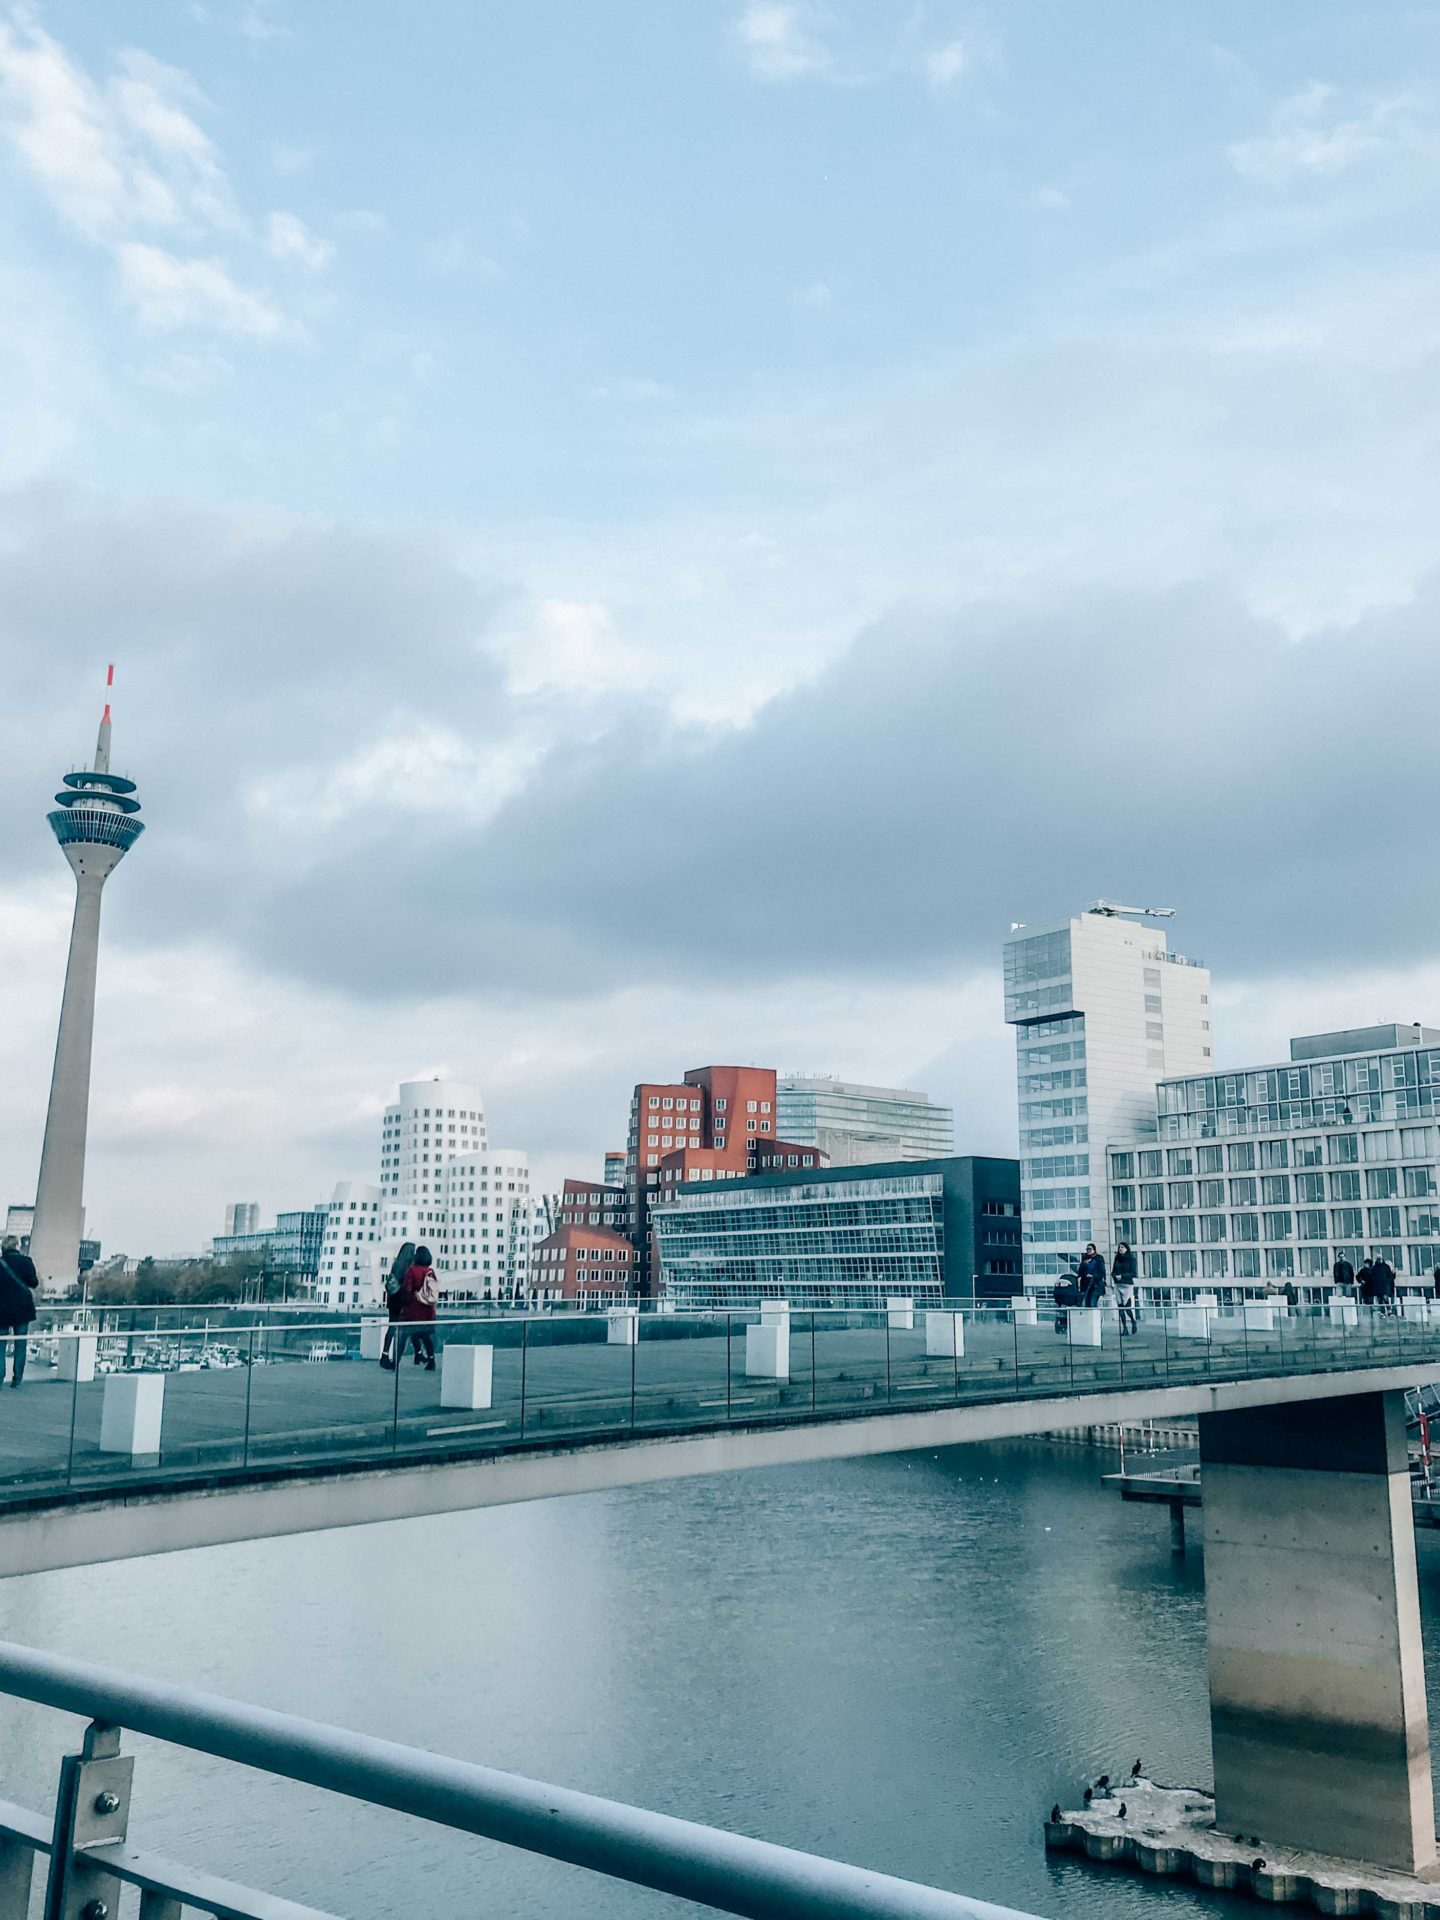 MediaHafen bridge and area, Düsseldorf